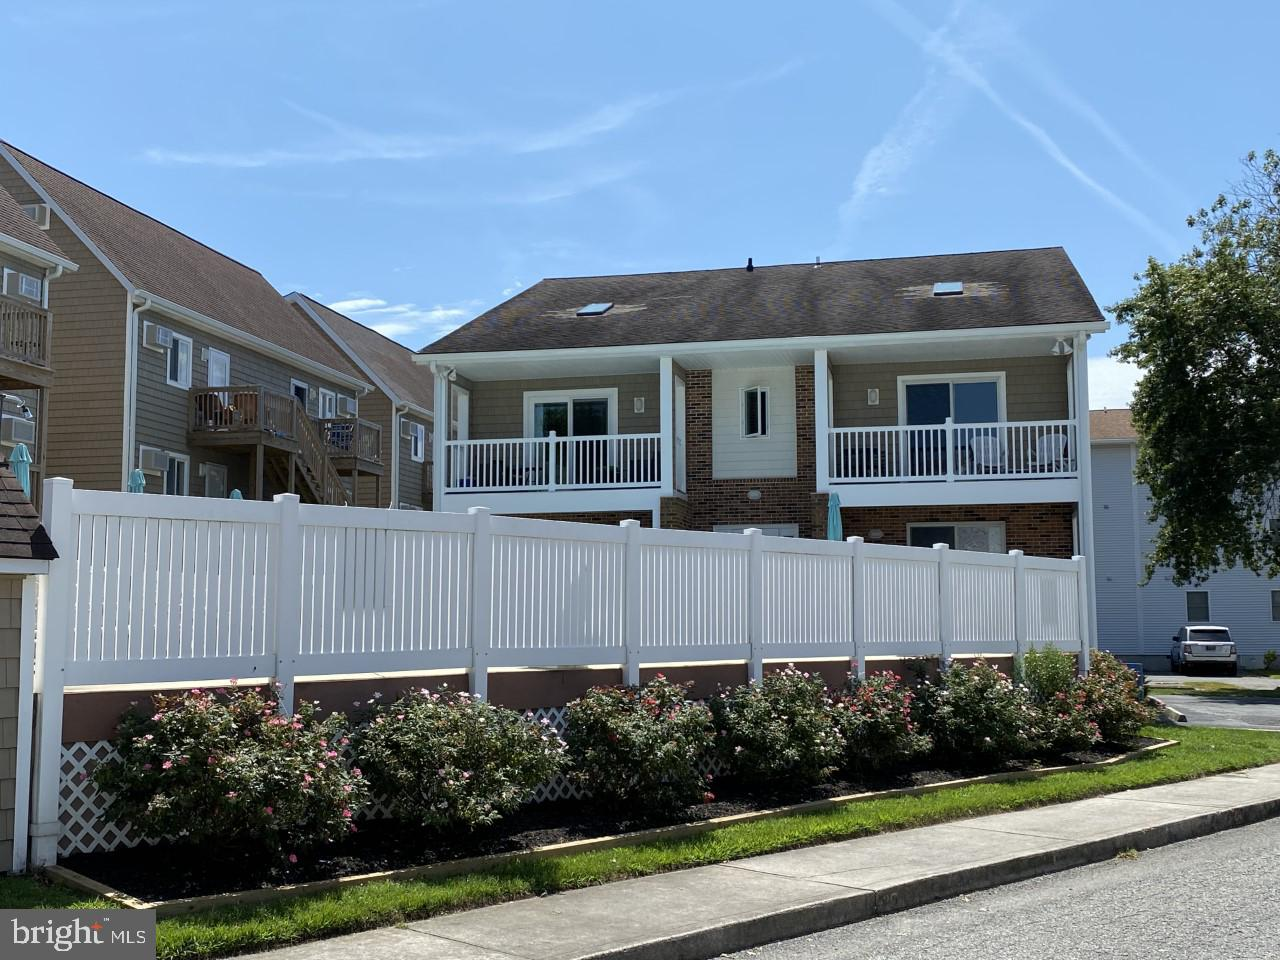 NEW Listing! Charming 1BR 1BA  1st floor unit in a small bayside building. This unit overlooks the outdoor pool ! Quite area in the Caine Woods section of North Ocean City. If you are looking for that vacation retreat to relax and just enjoy Ocean City this is it! This unit is close to the beach, restaurants, amusements and shopping. Easy access to rt 54!